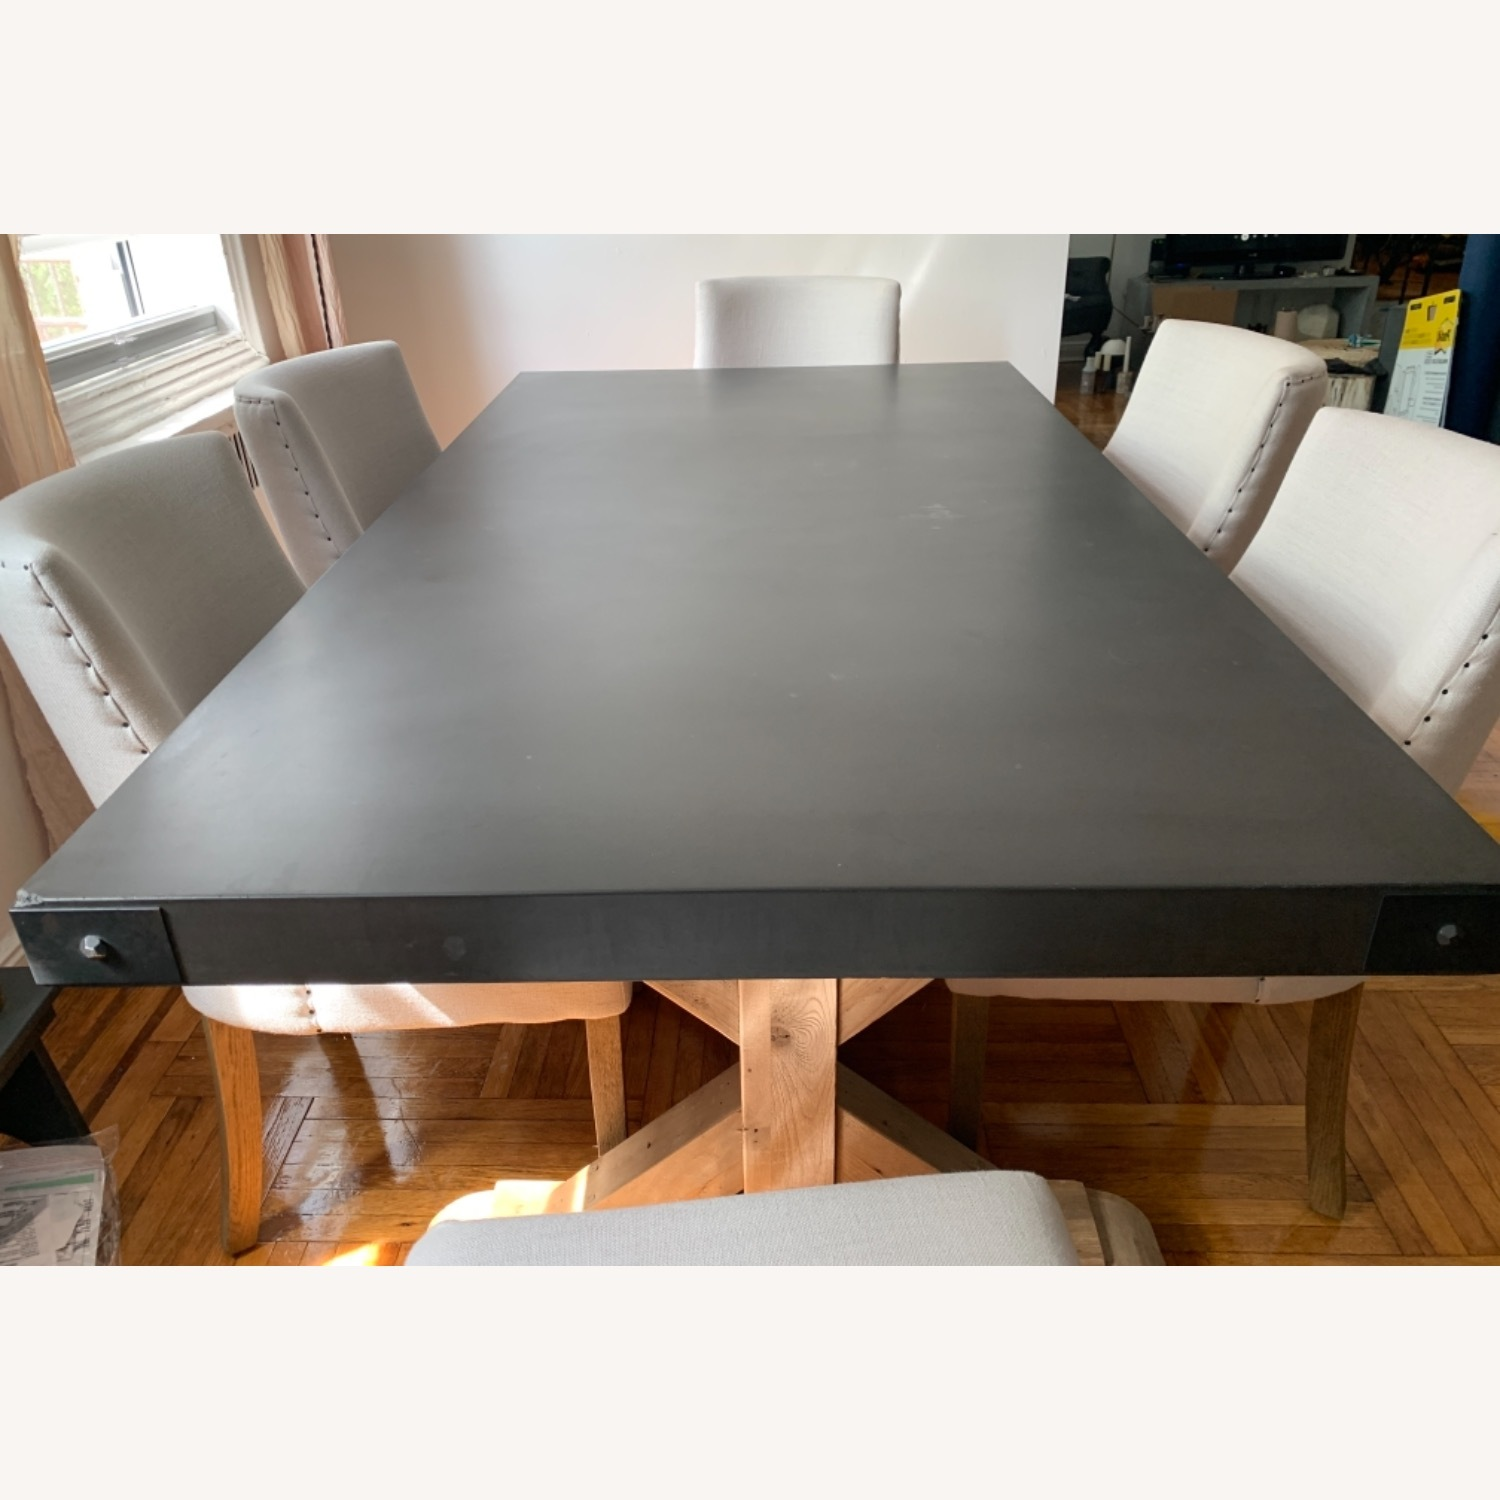 Restoration Hardware Salvaged Wood and Concrete Dining Table - image-20